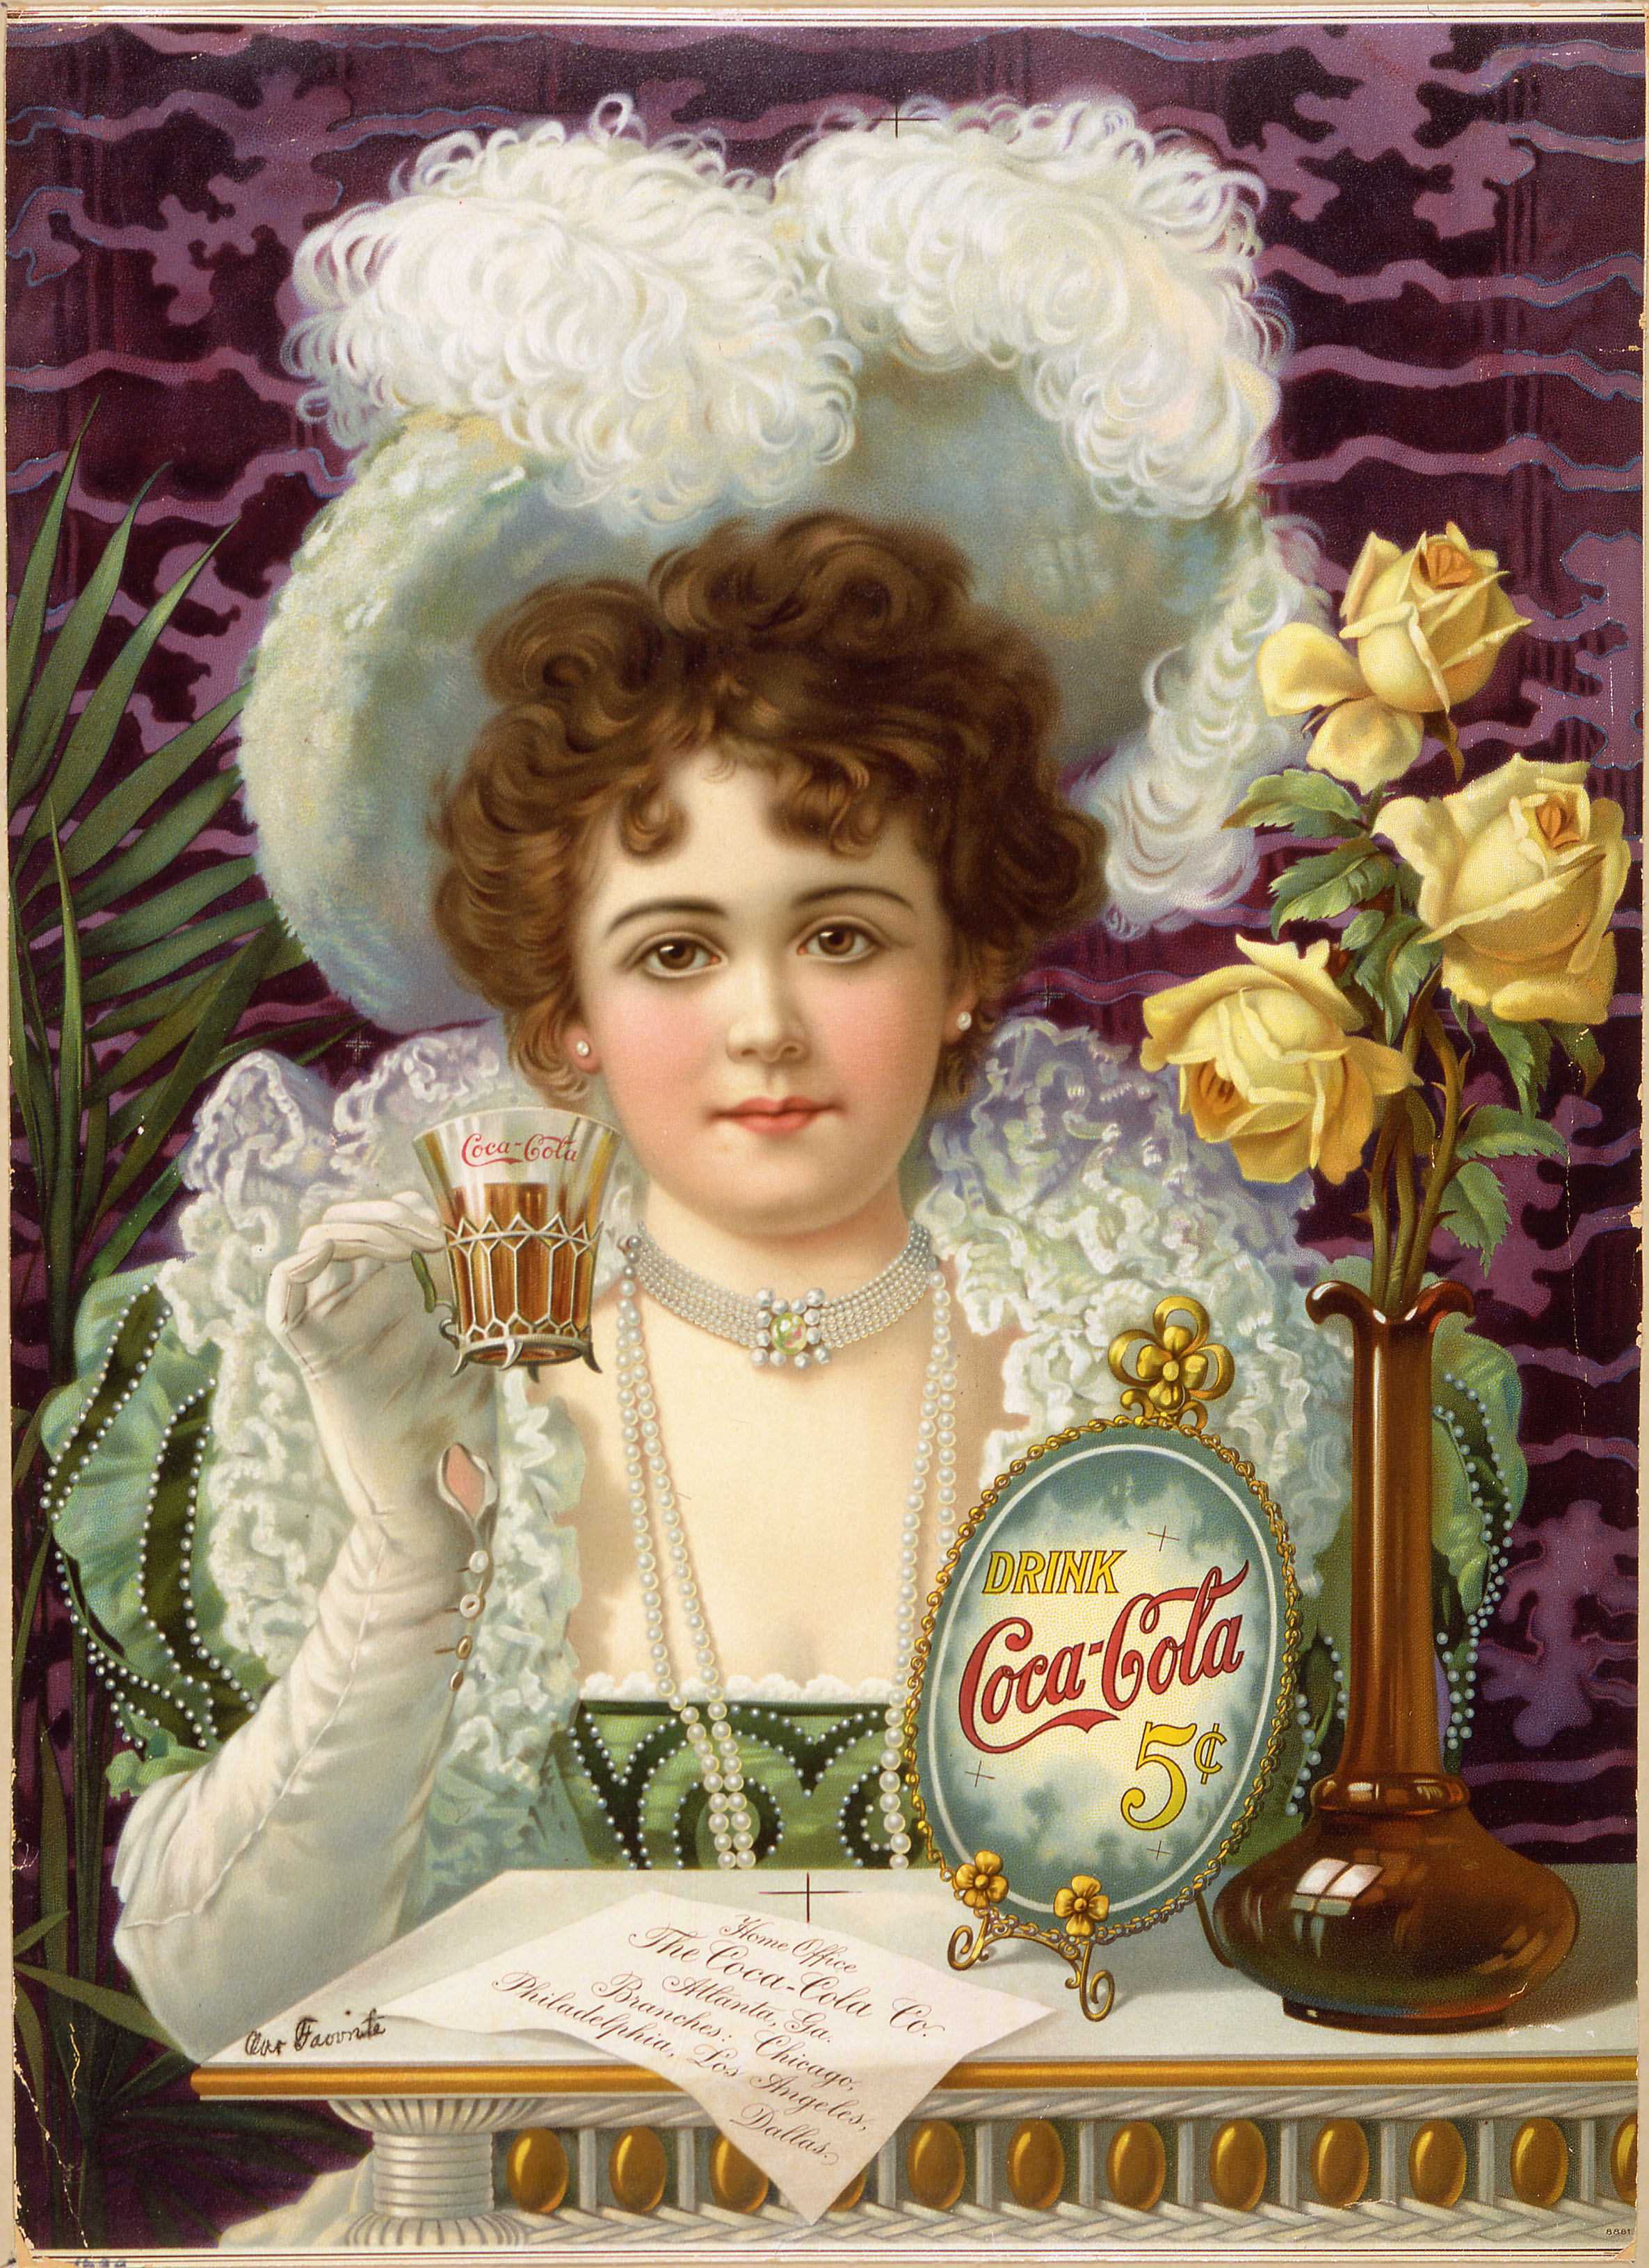 http://dic.academic.ru/pictures/wiki/files/67/Cocacola-5cents-1900.jpg